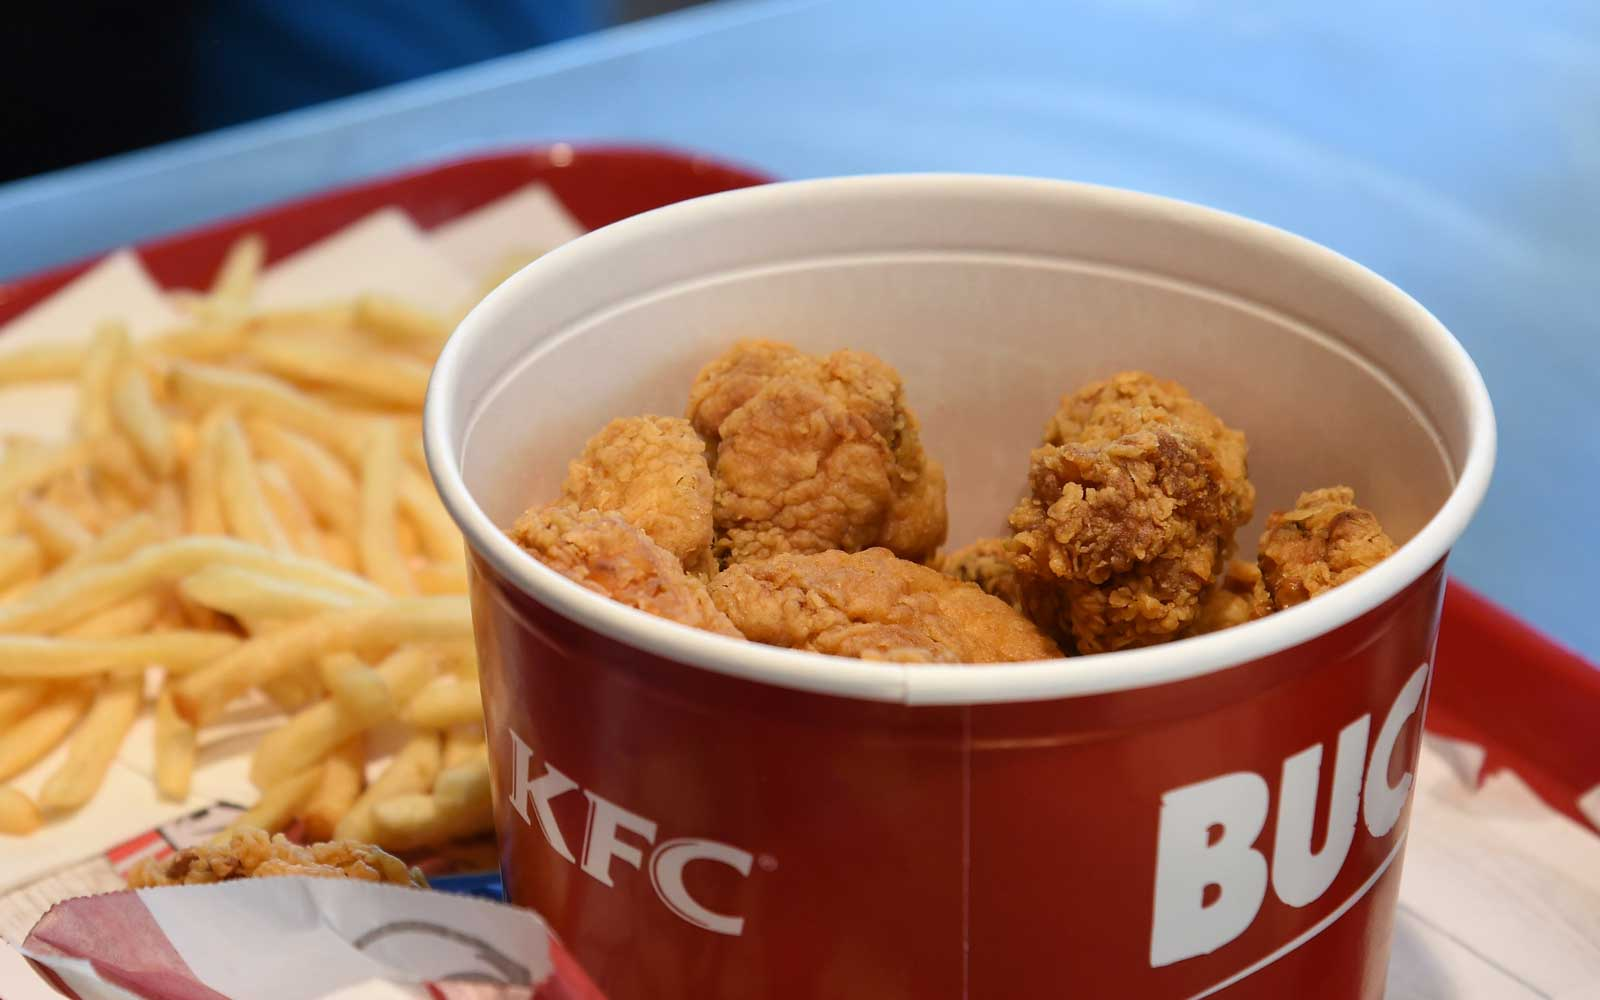 KFC Gave Away More of Their Chicken-scented Candles